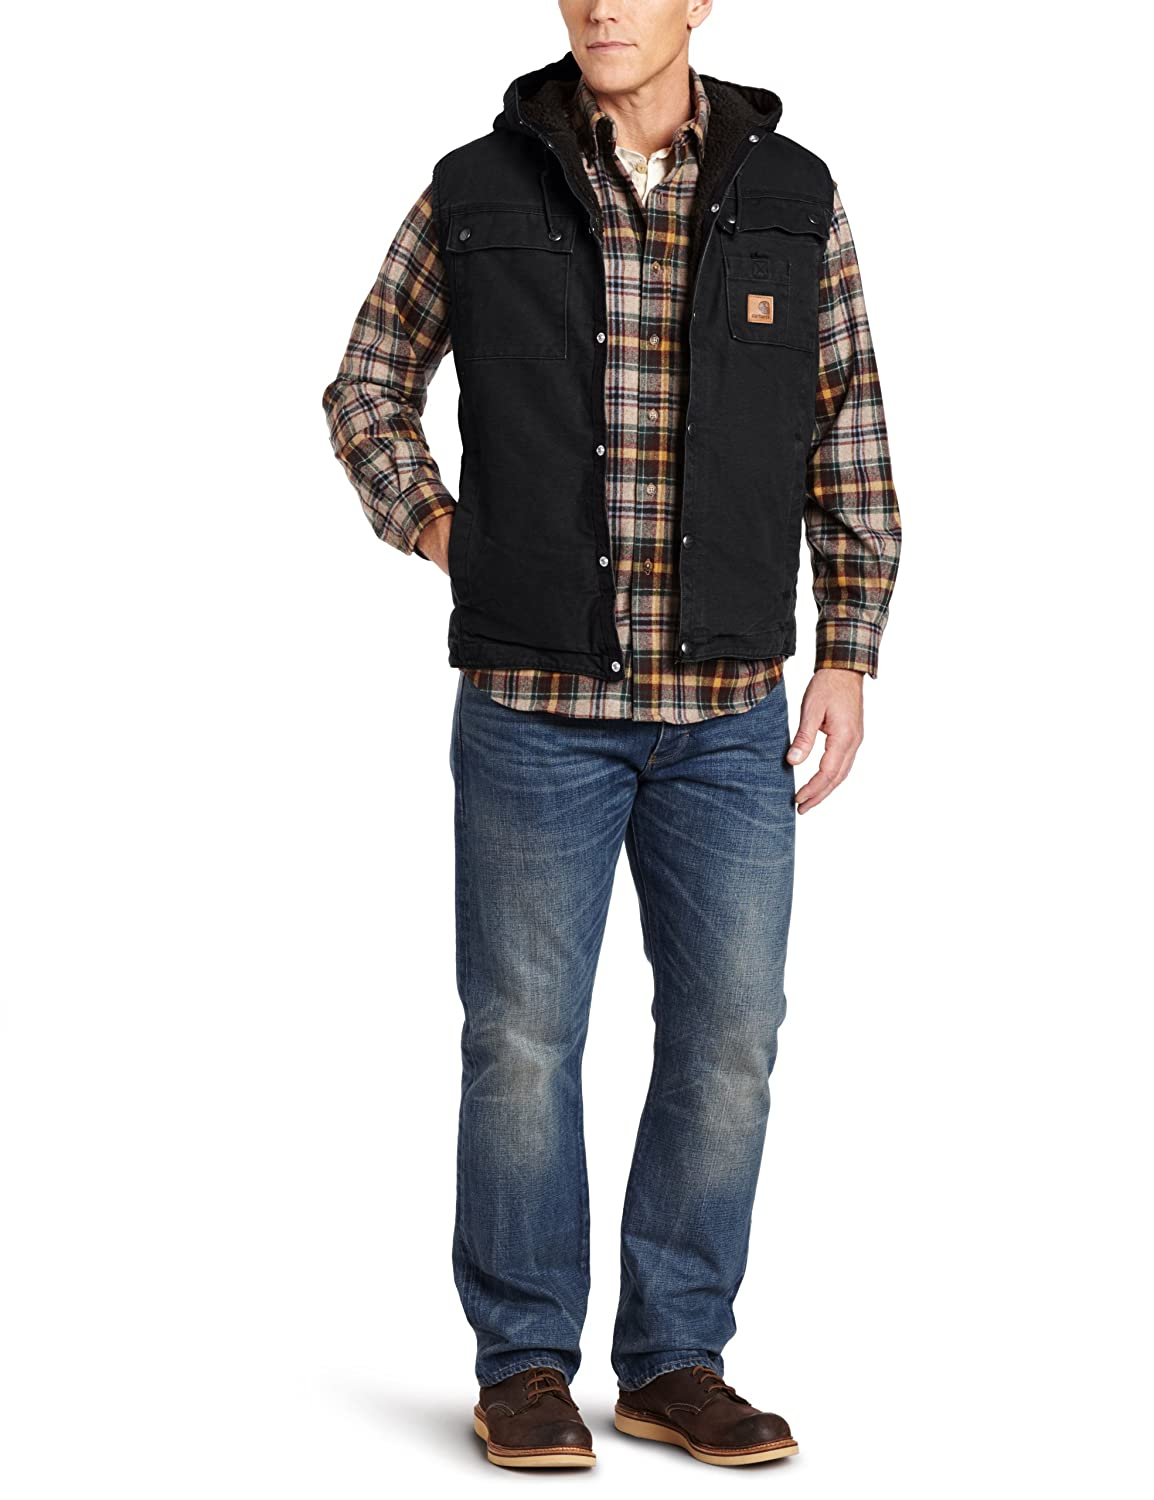 Carhartt Men's Sandstone Duck Hooded Multi Pocket Vest Sherpa Lined